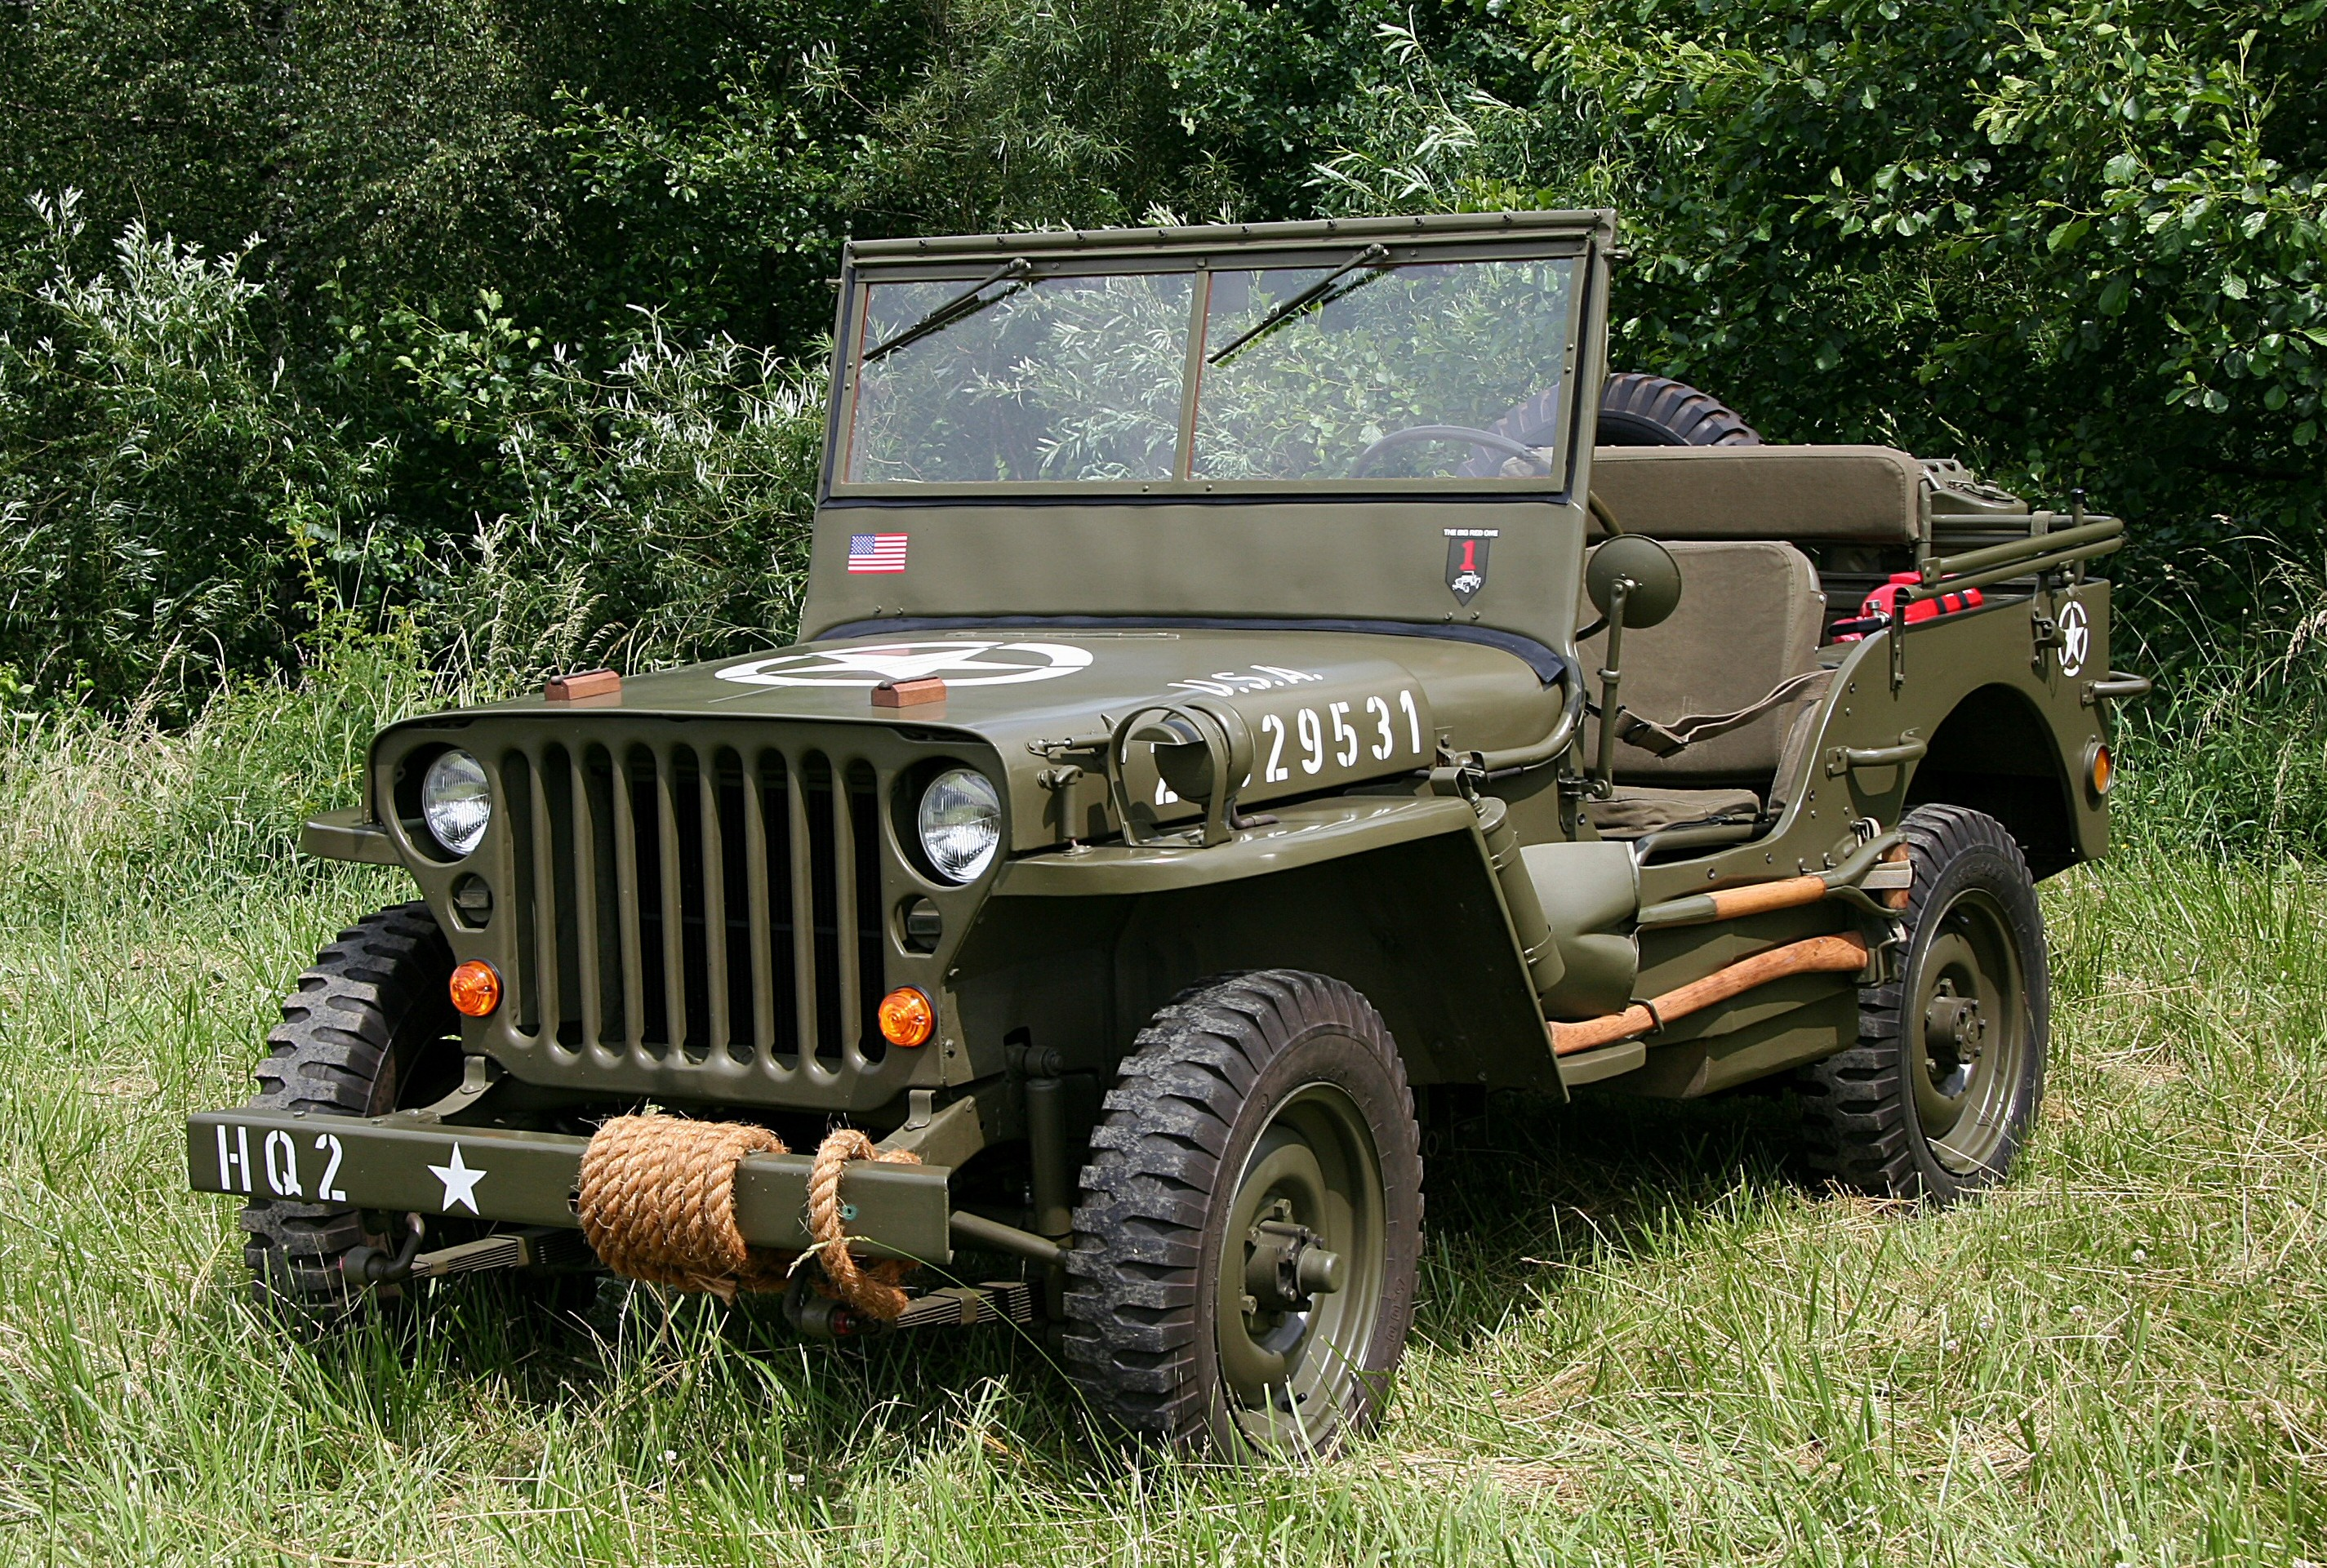 Willys_MB_%28Bild_1_2008-06-14%29%2C_Bau